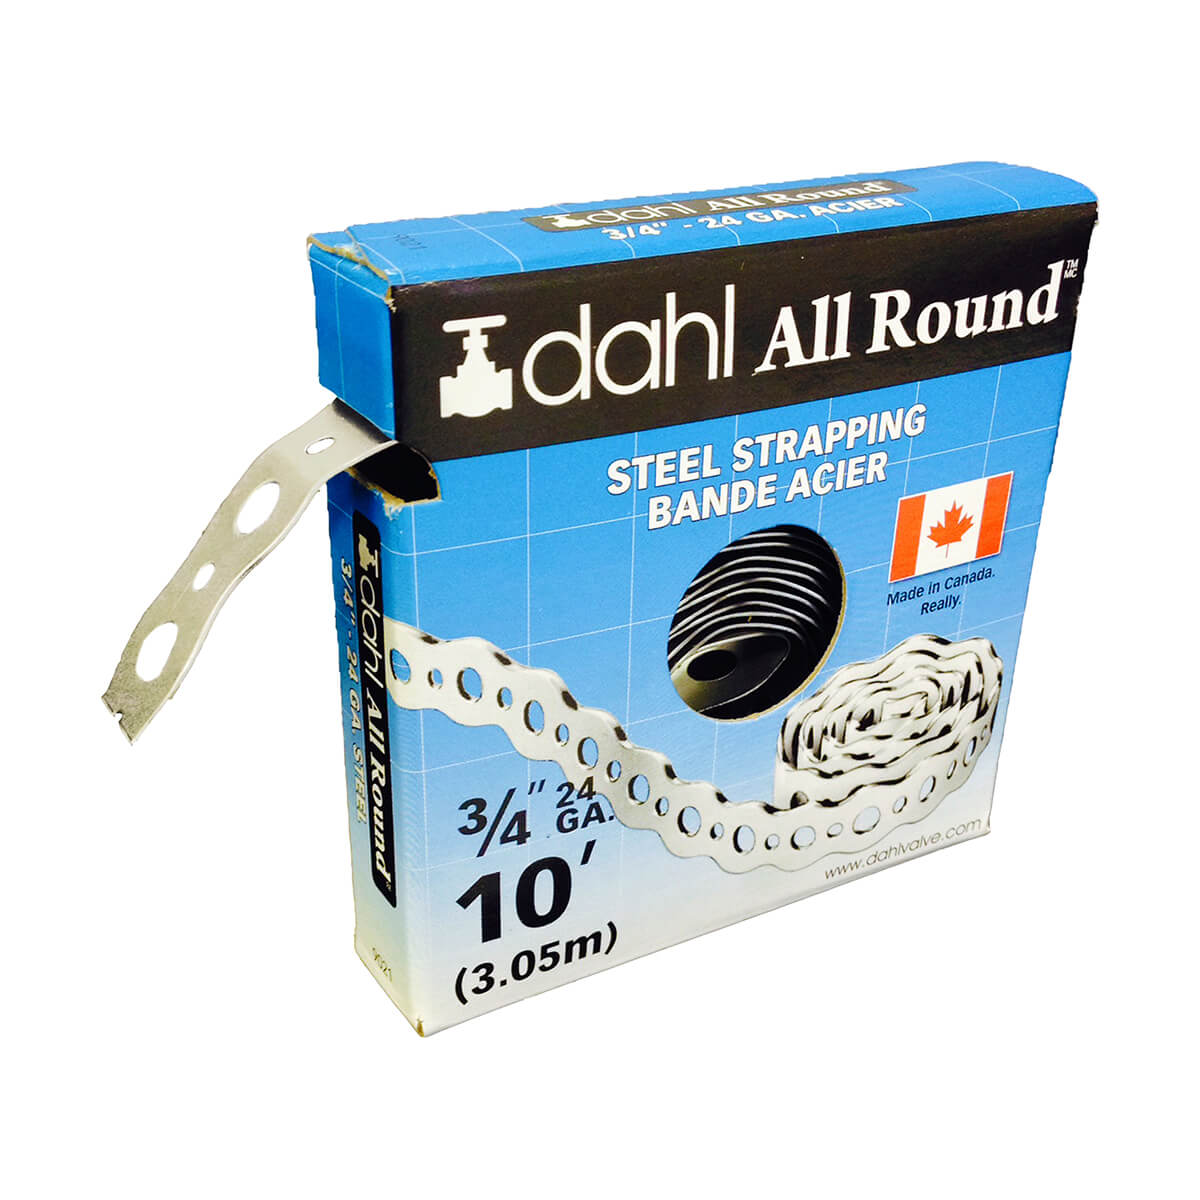 """Steel 24 Gauge All Round Strapping - 3/4"""" x 10'"""